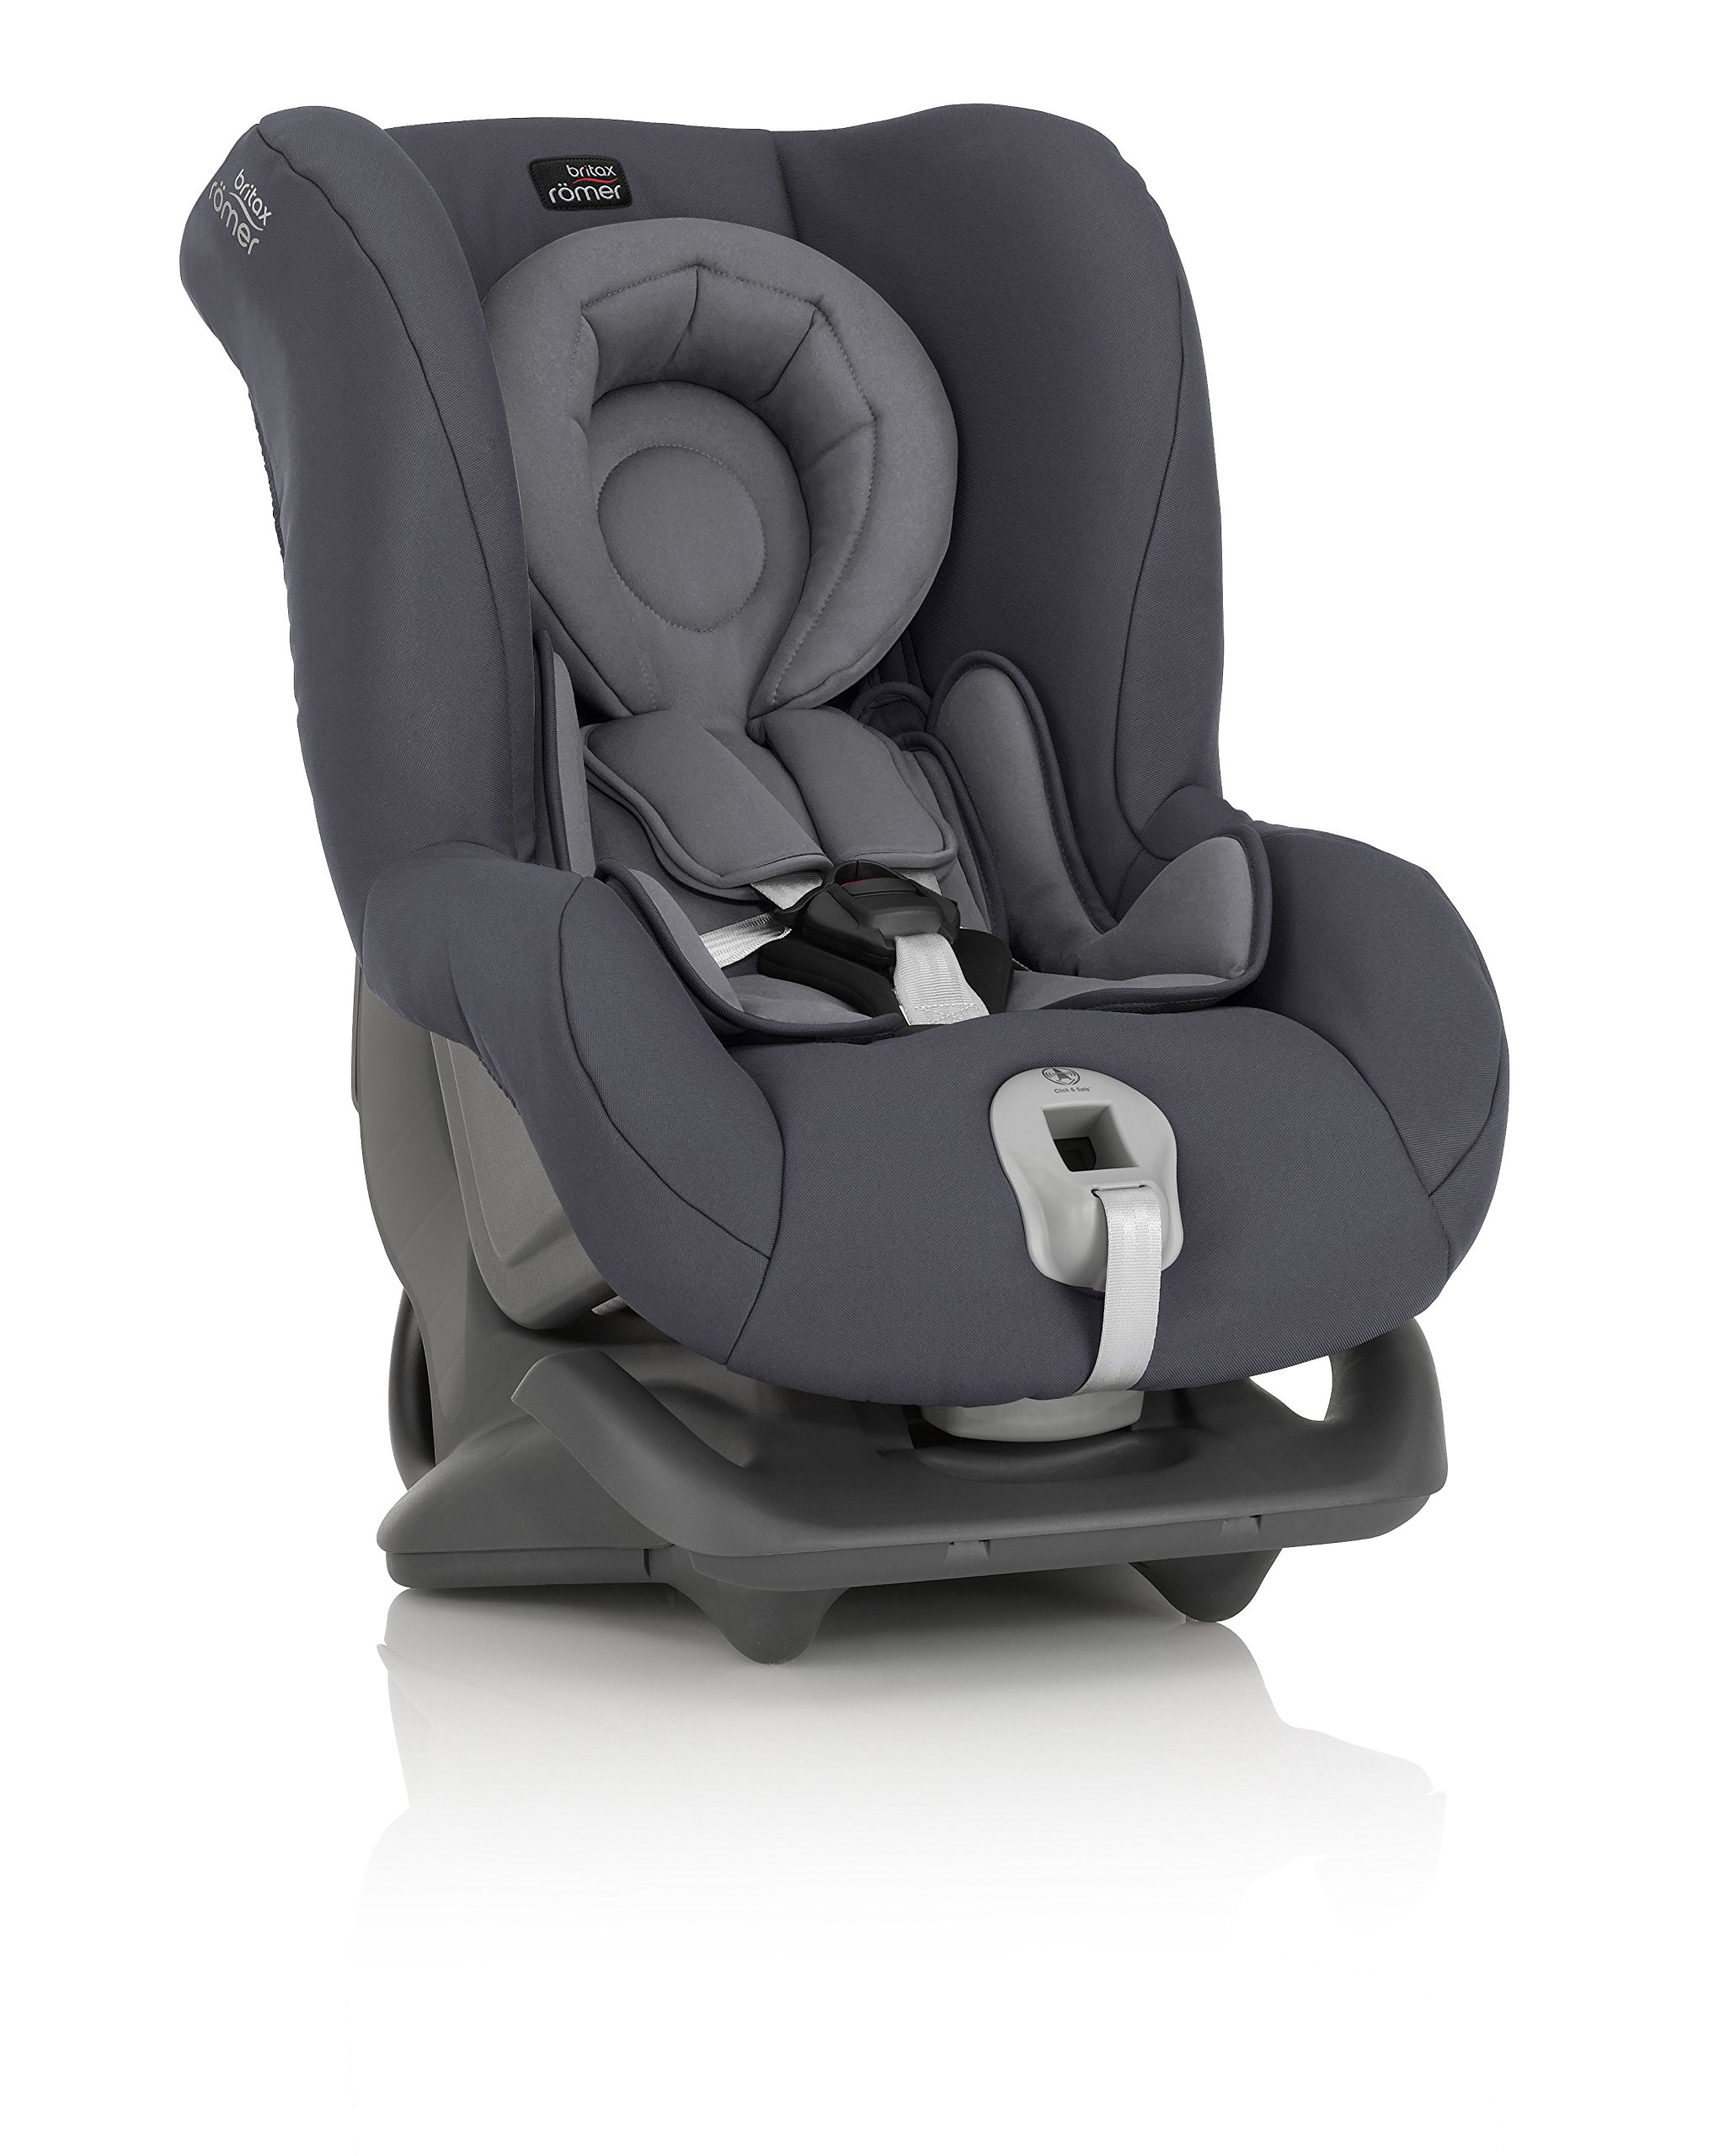 Britax Römer FIRST CLASS PLUS Group 0+/1 (Birth-18kg) Car Seat - Storm Grey  Extended recline position when rearward facing - the safest way to travel Reassurance built-in - Click and safe harness tensioning confirmation High quality protection - side impact protection Plus performance chest pads and pitch control system 4